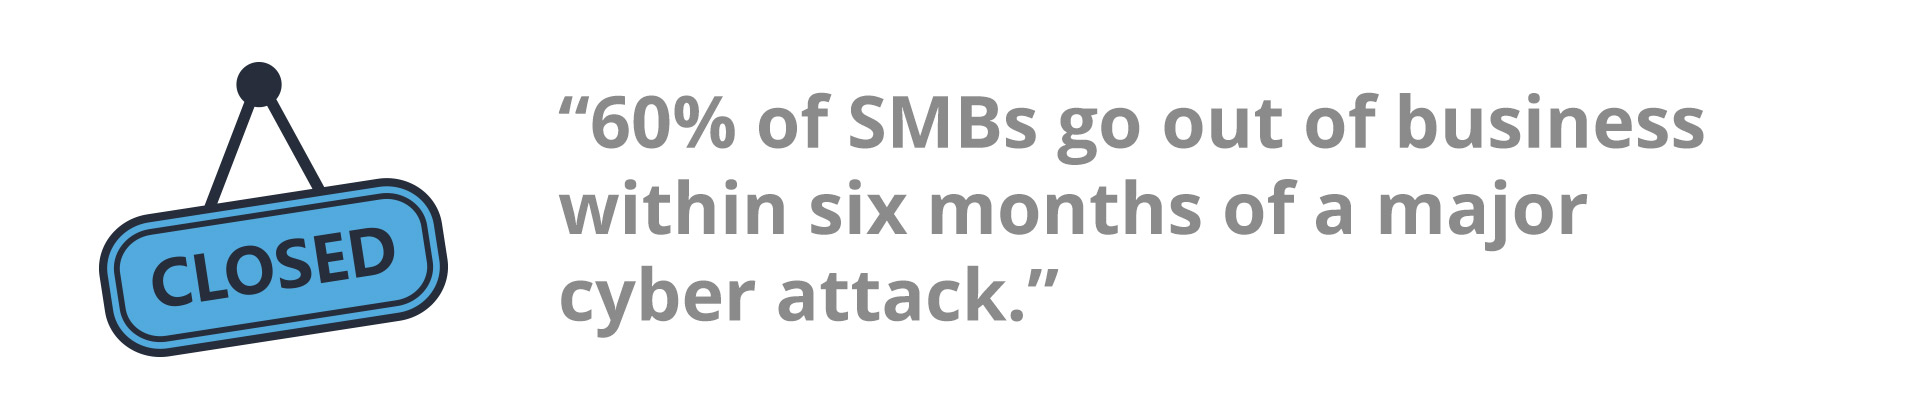 60% of SMBs go out of business within six months of a major cyber attack.